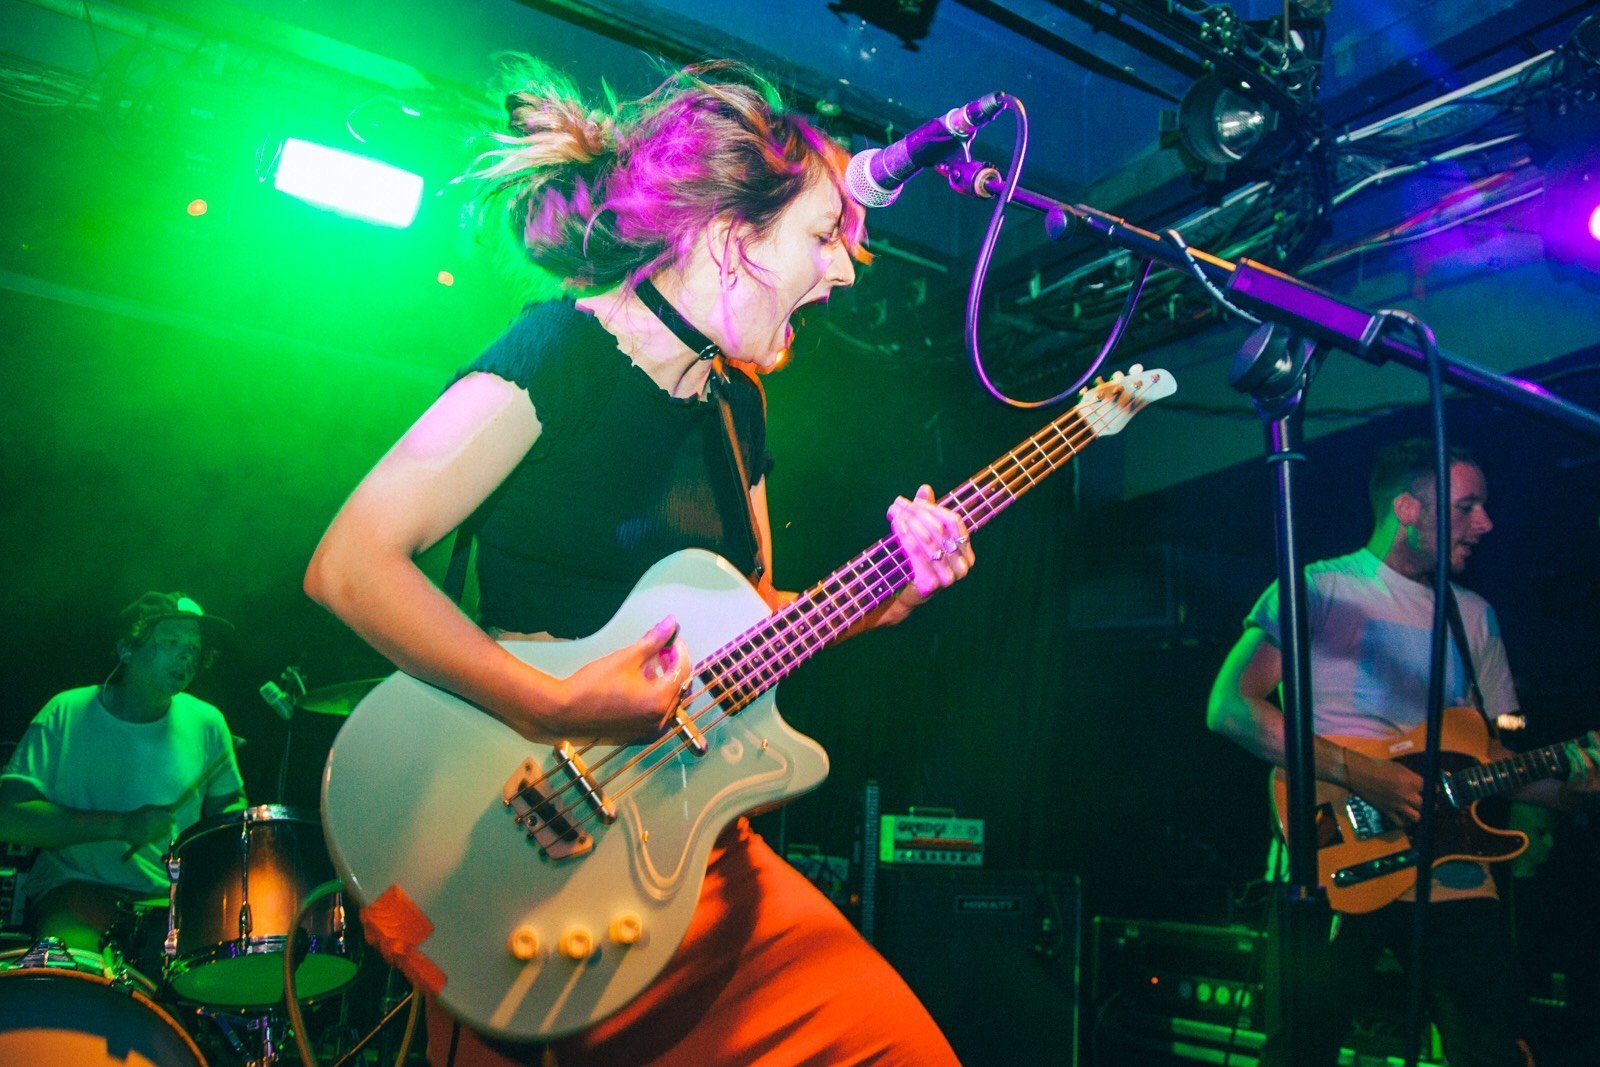 Get Inuit and Superglu reaffirm faith in live music at Dingwalls